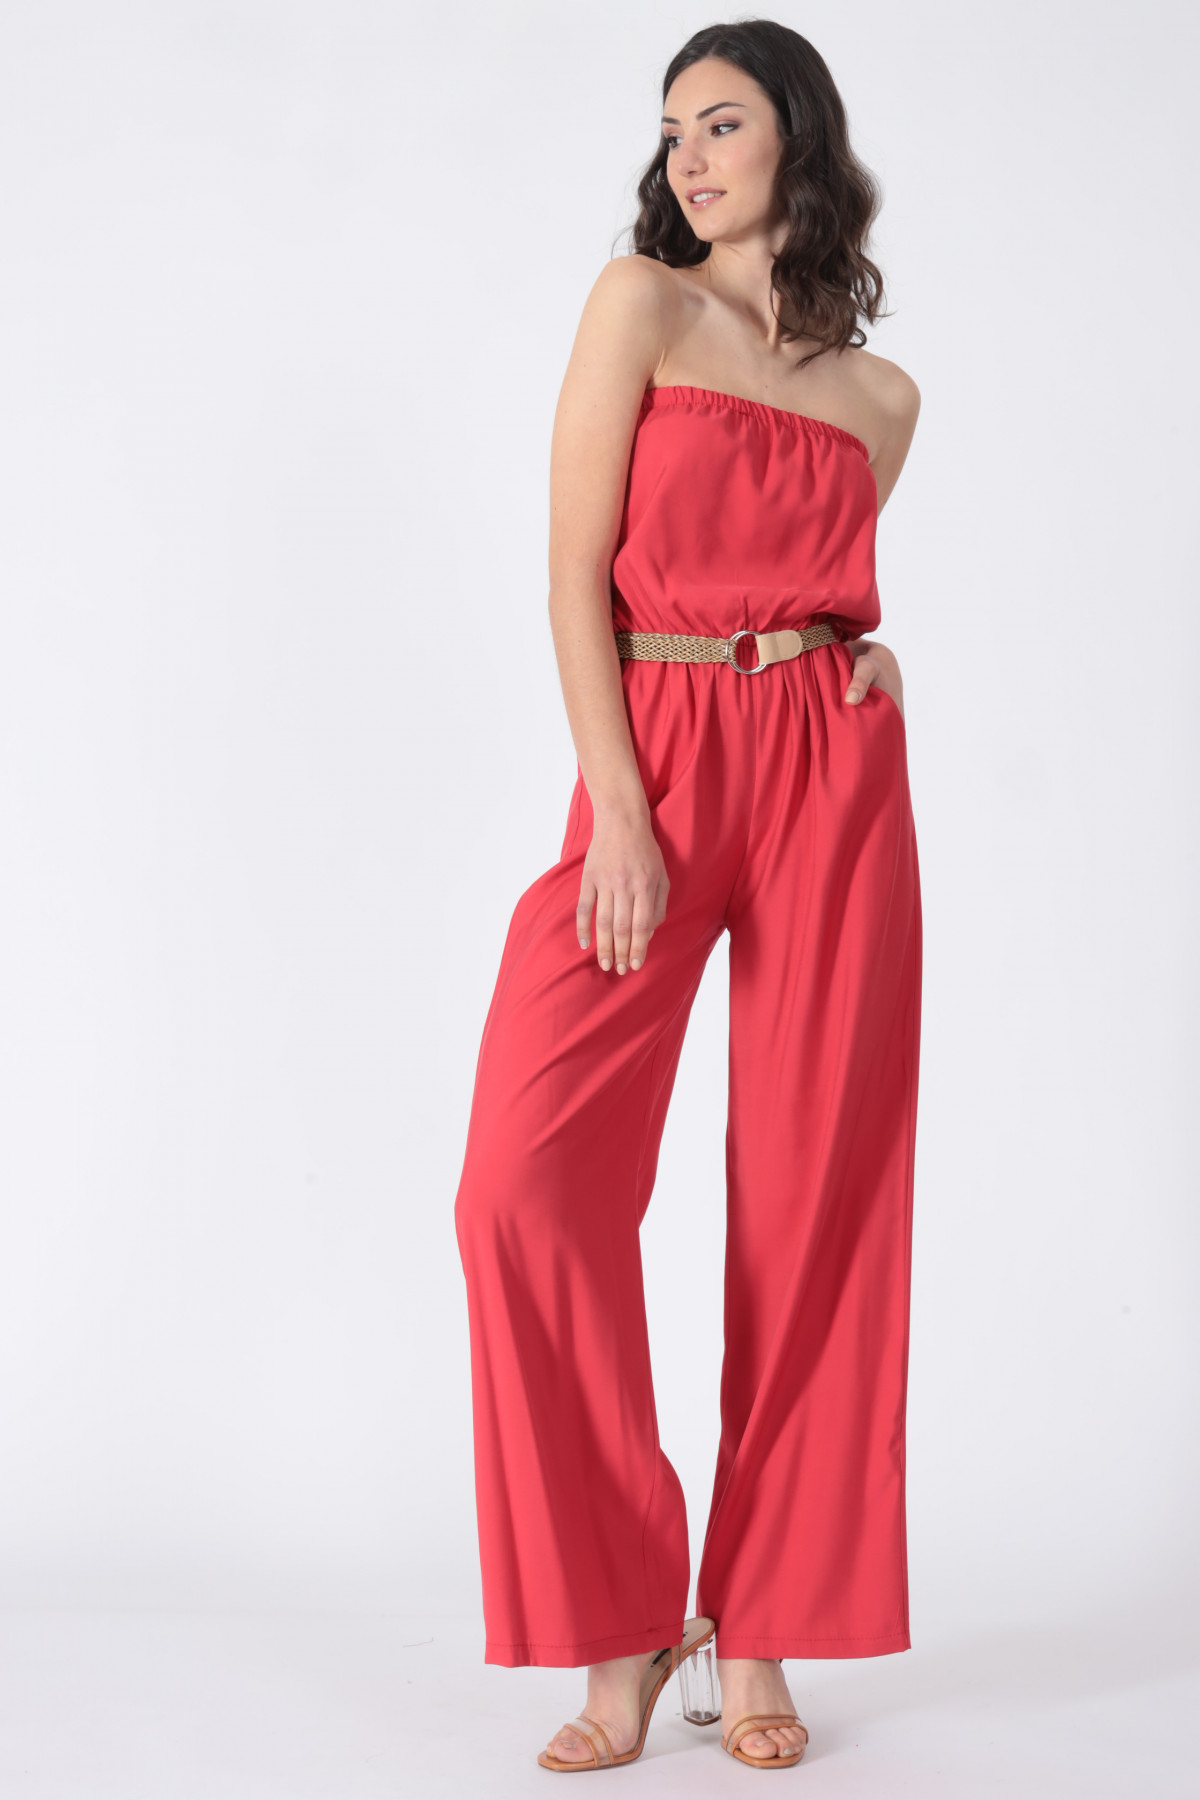 Bandeau Suit with Braided Belt